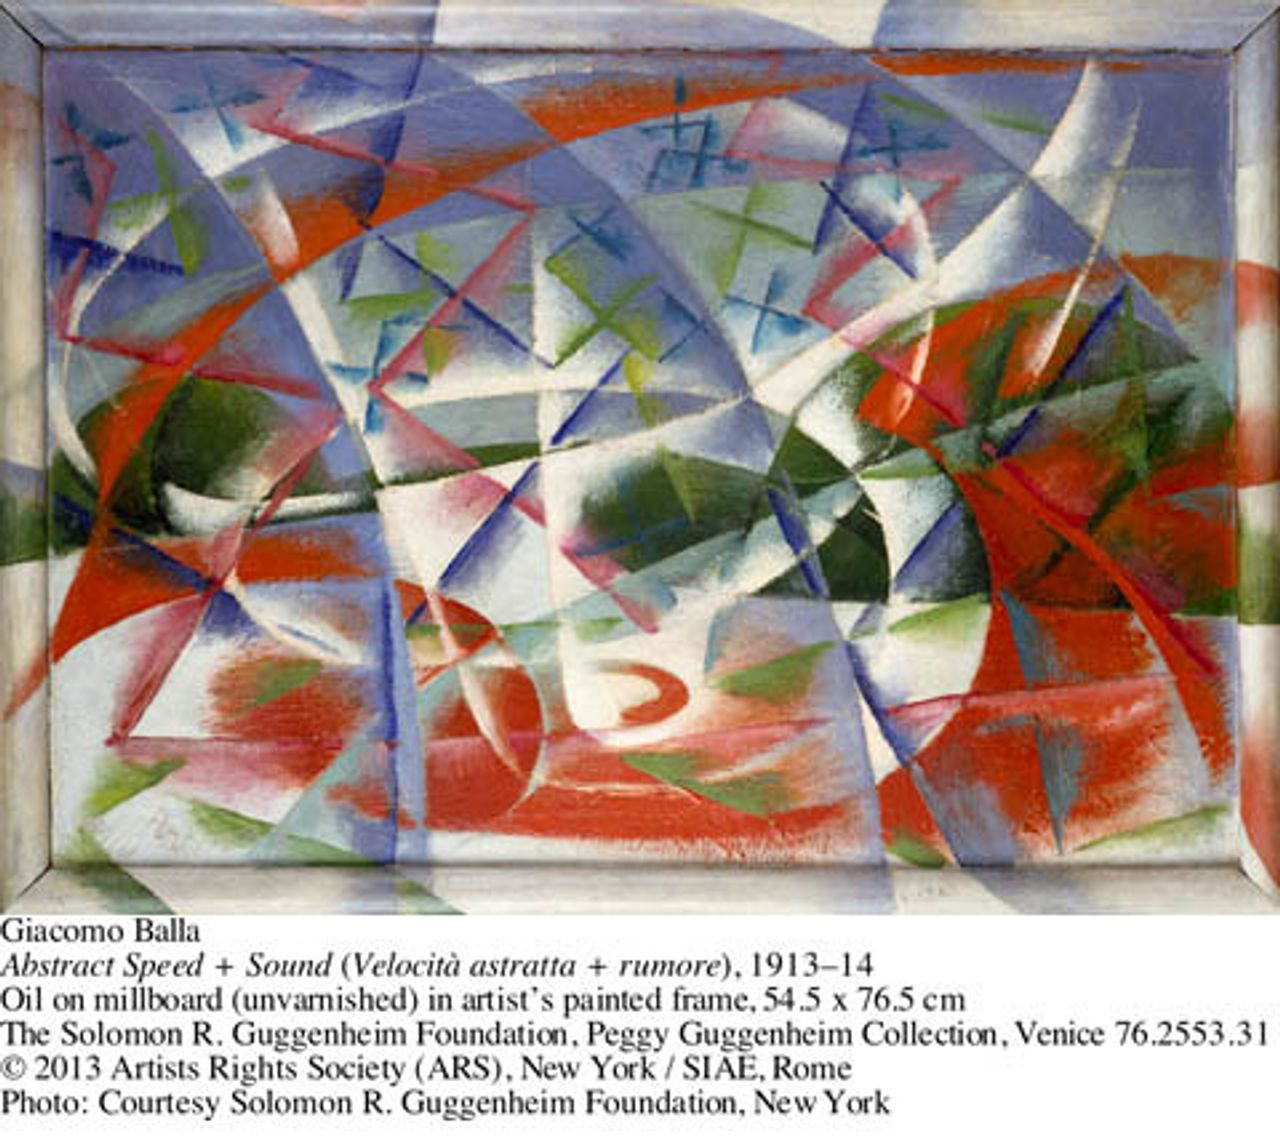 Giacomo Balla, Abstract speed + sound